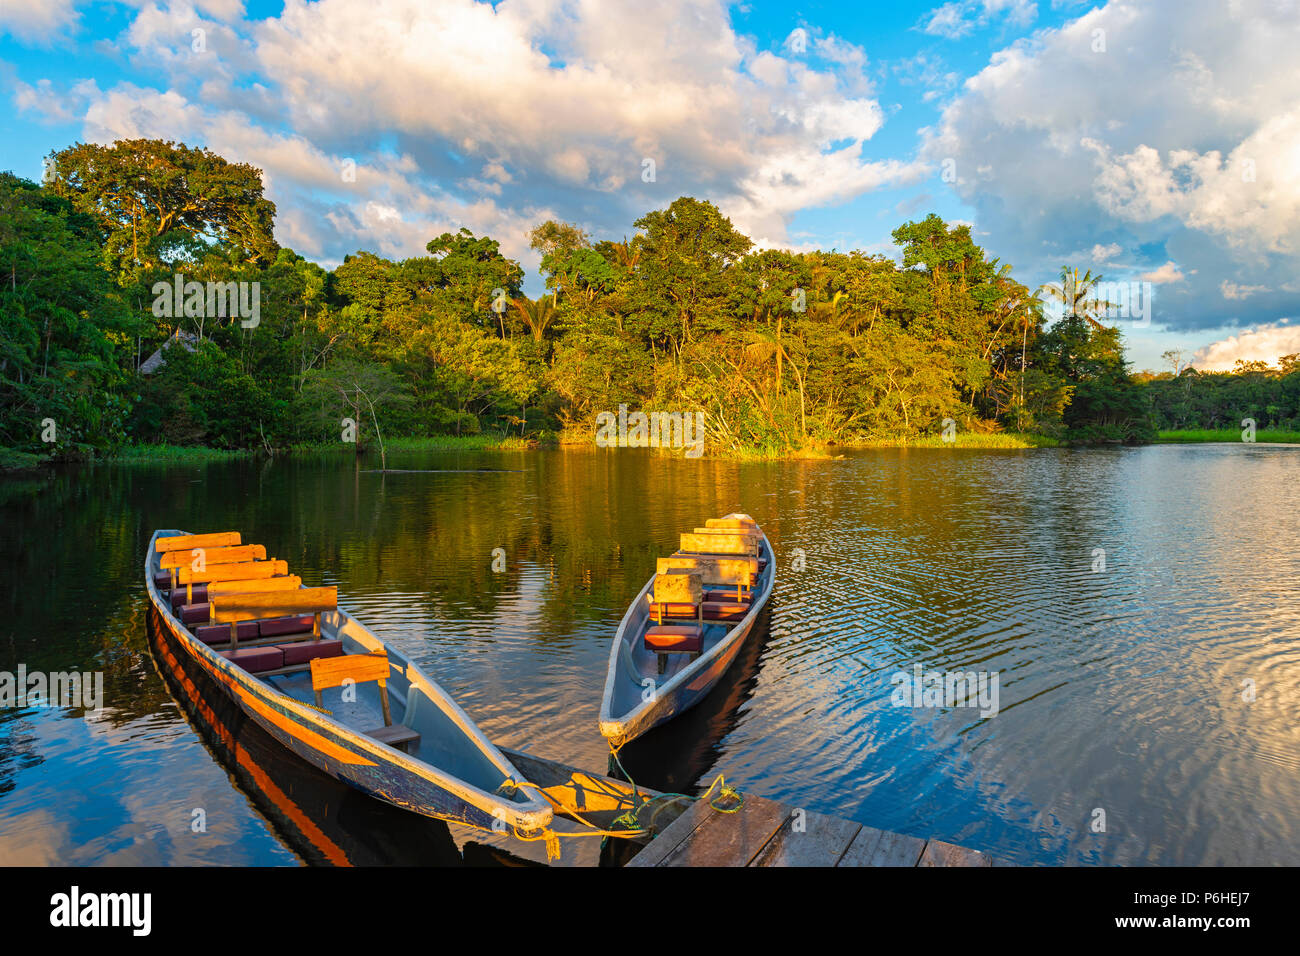 Two traditional wooden canoes at sunset in the Amazon River Basin with the tropical rainforest in the background, Yasuni National Park, Ecuador. Stock Photo